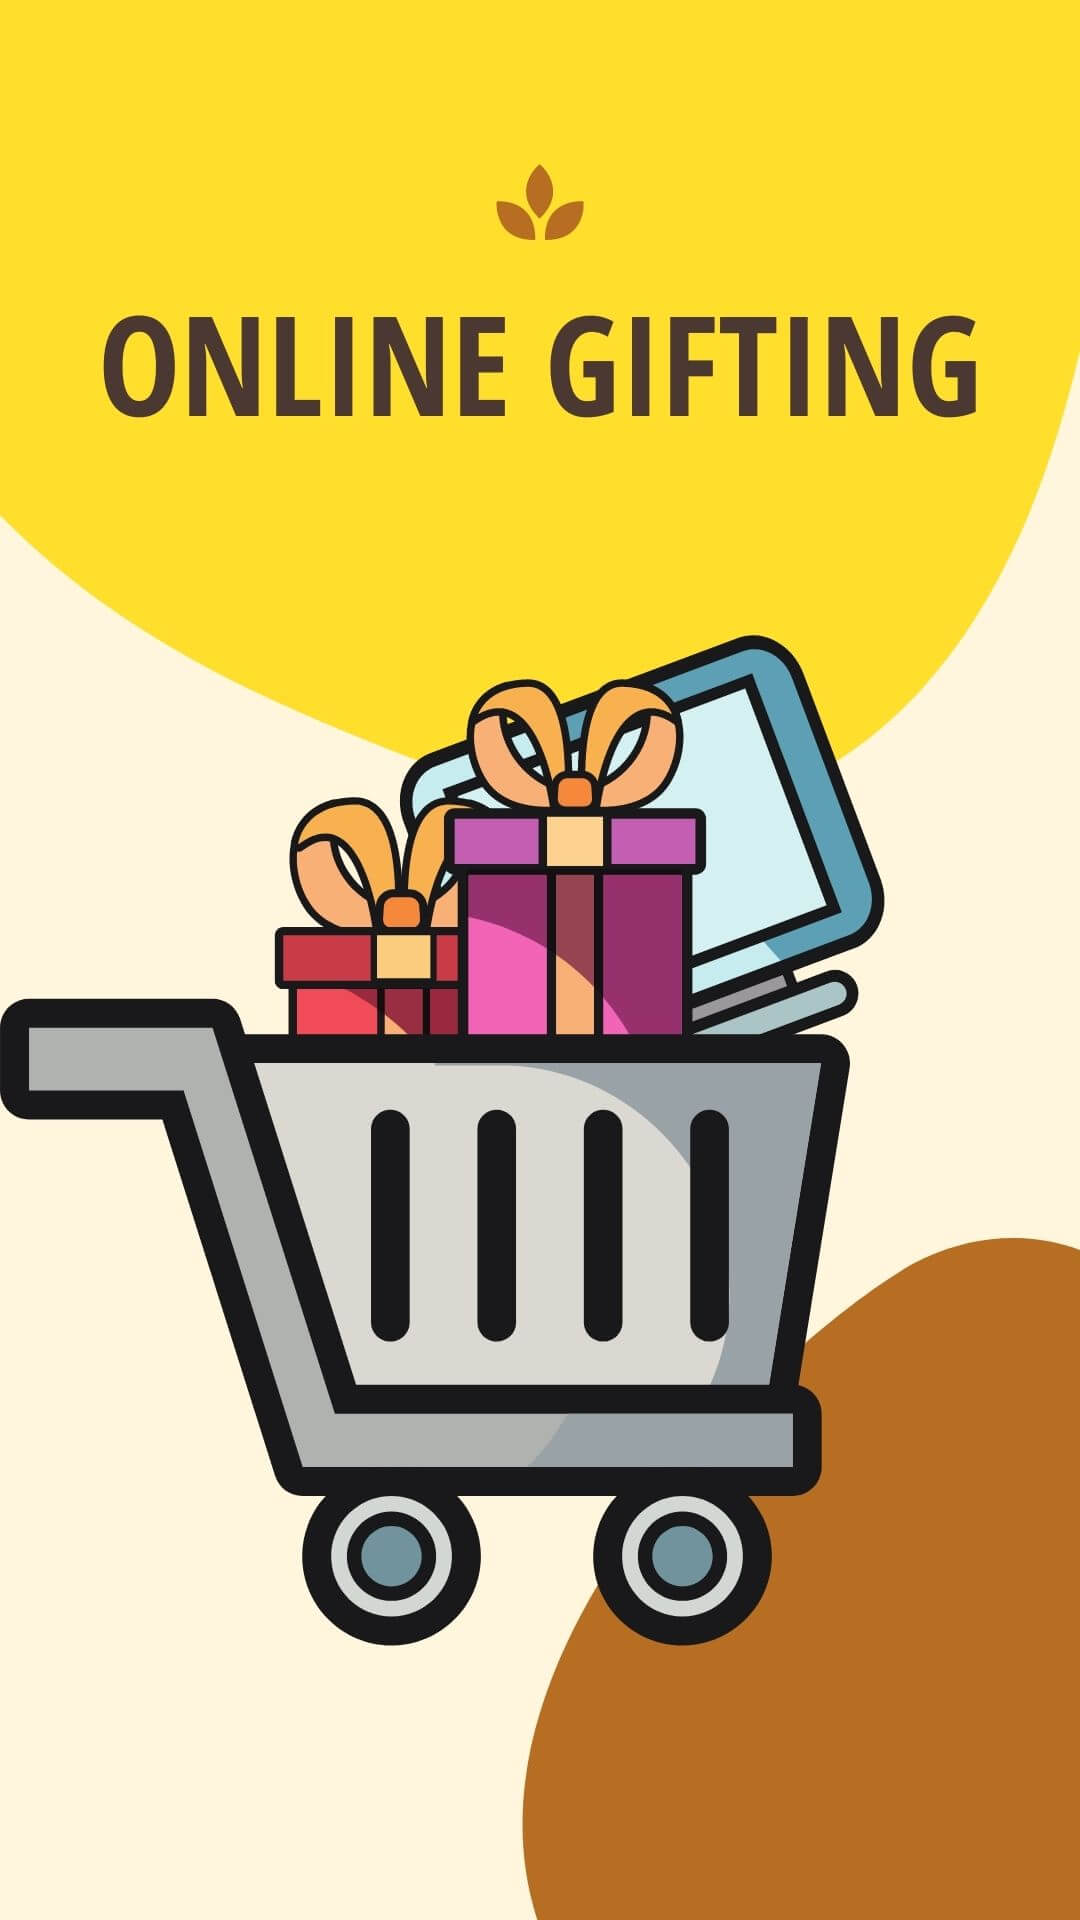 Online Gifting